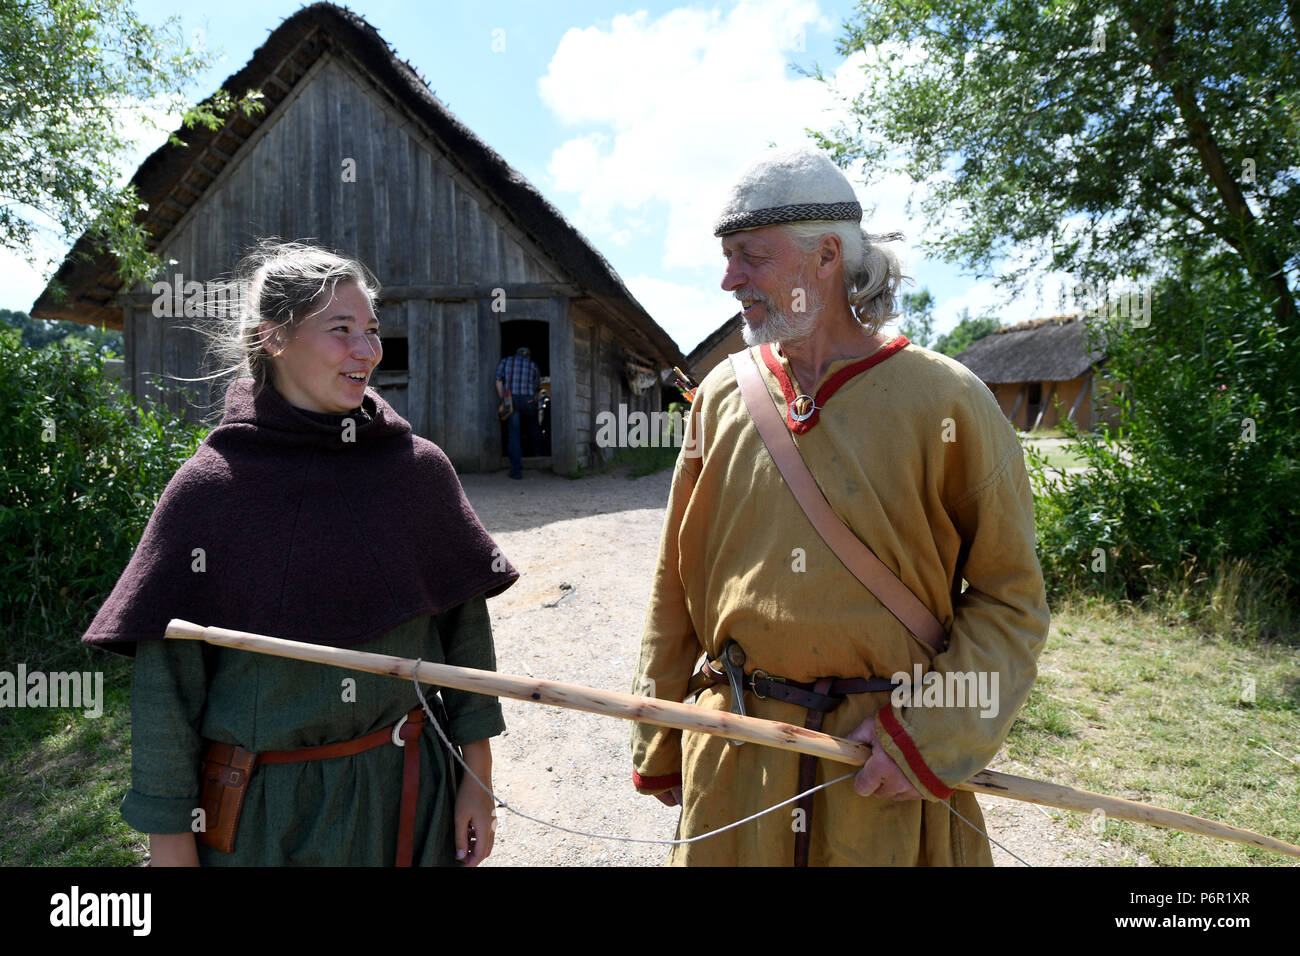 19.06.2018, Schleswig-Holstein, Busdorf: employees in authentic Viking clothing stand on the grounds of the Viking houses of Haithabu. The UNESCO World Heritage Kowithee will decide on the inclusion of new monuments in the World Heritage List at its meeting in Bahrain from 24 June to 3 July. From Germany are Viking-time Statten in Danewerk and Haithabu in Schleswig here. (to dpa 'Wikingestatten as a World Heritage:' Then we play World League ') Photo: Carsten Rehder/dpa | usage worldwide - Stock Image